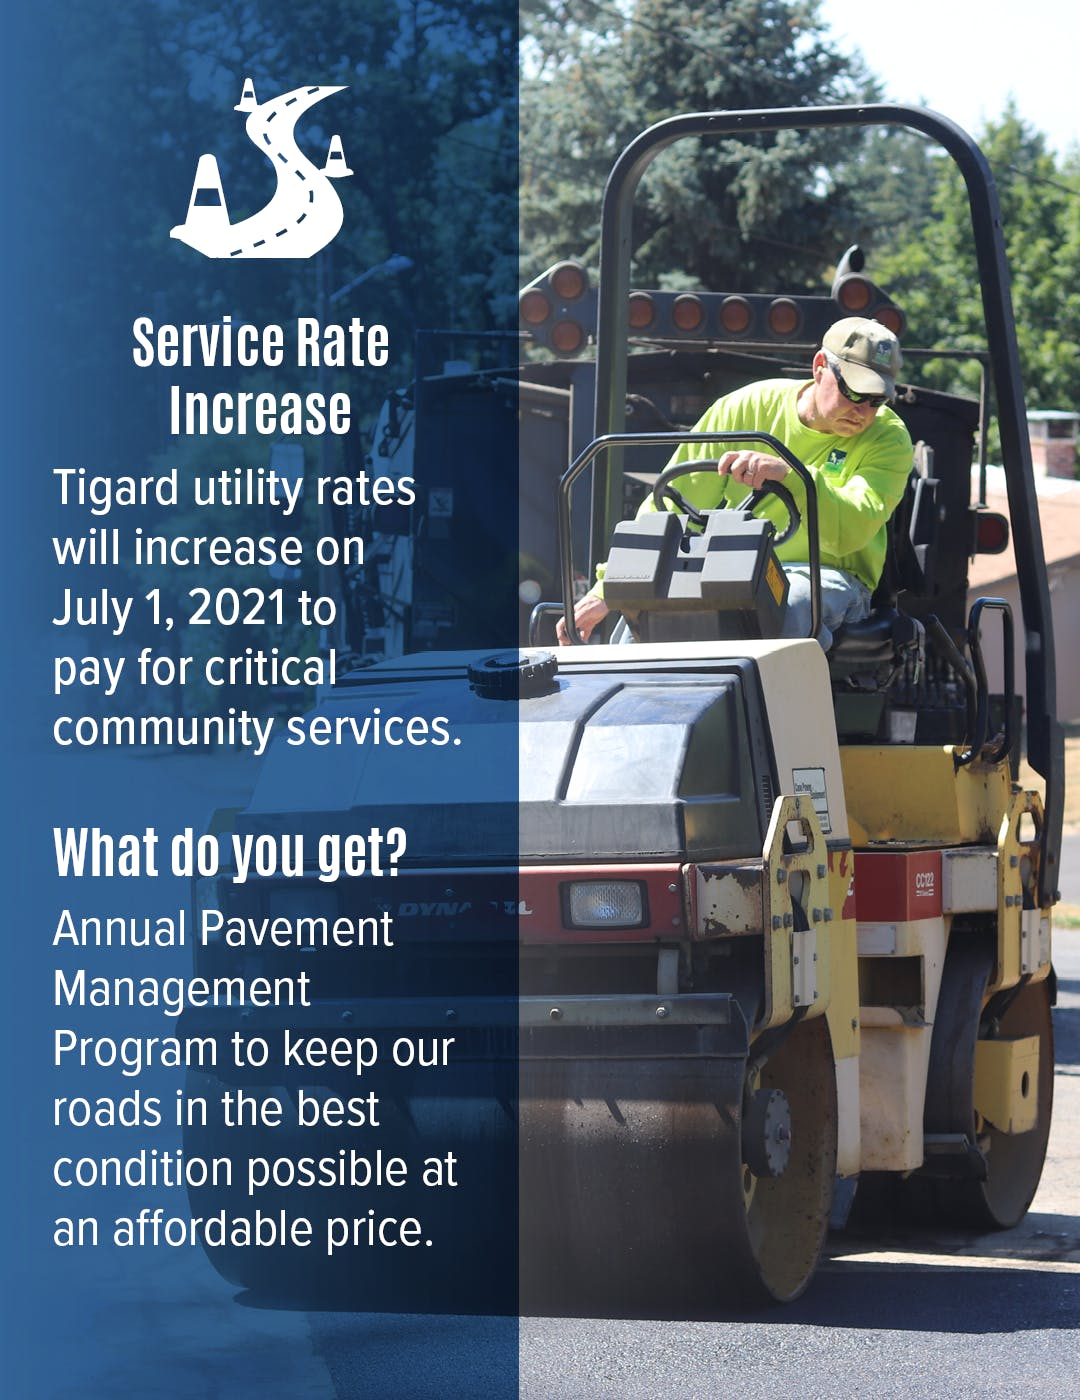 Services_Rate_Increase_Streets_July2021_shared_social_1080x1400.png